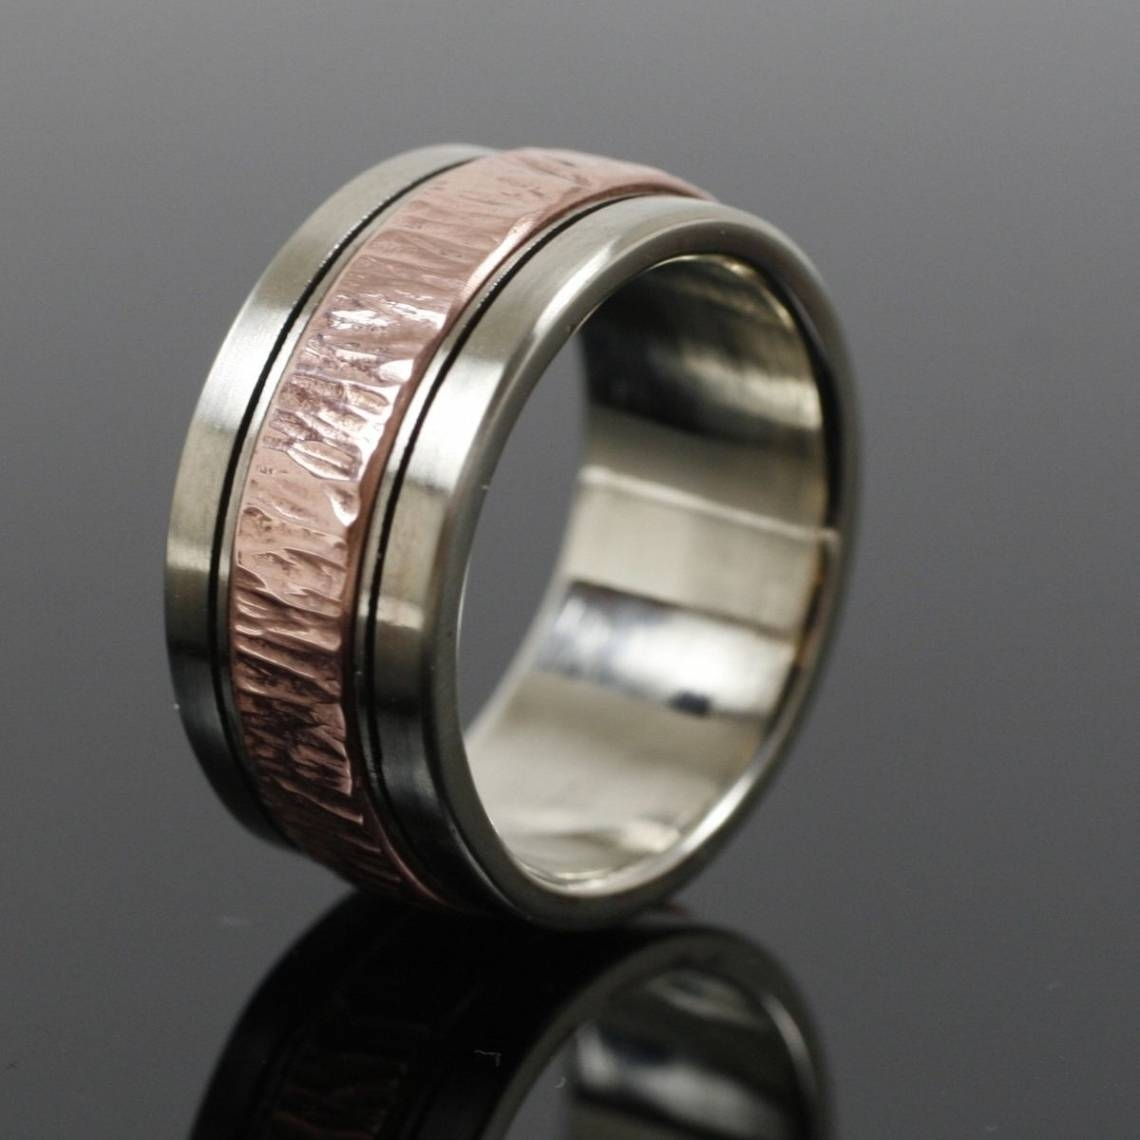 Hand Crafted Mens White Gold And Copper Wedding Bandearth Art With Throughout Outdoorsman Wedding Bands (Gallery 3 of 15)